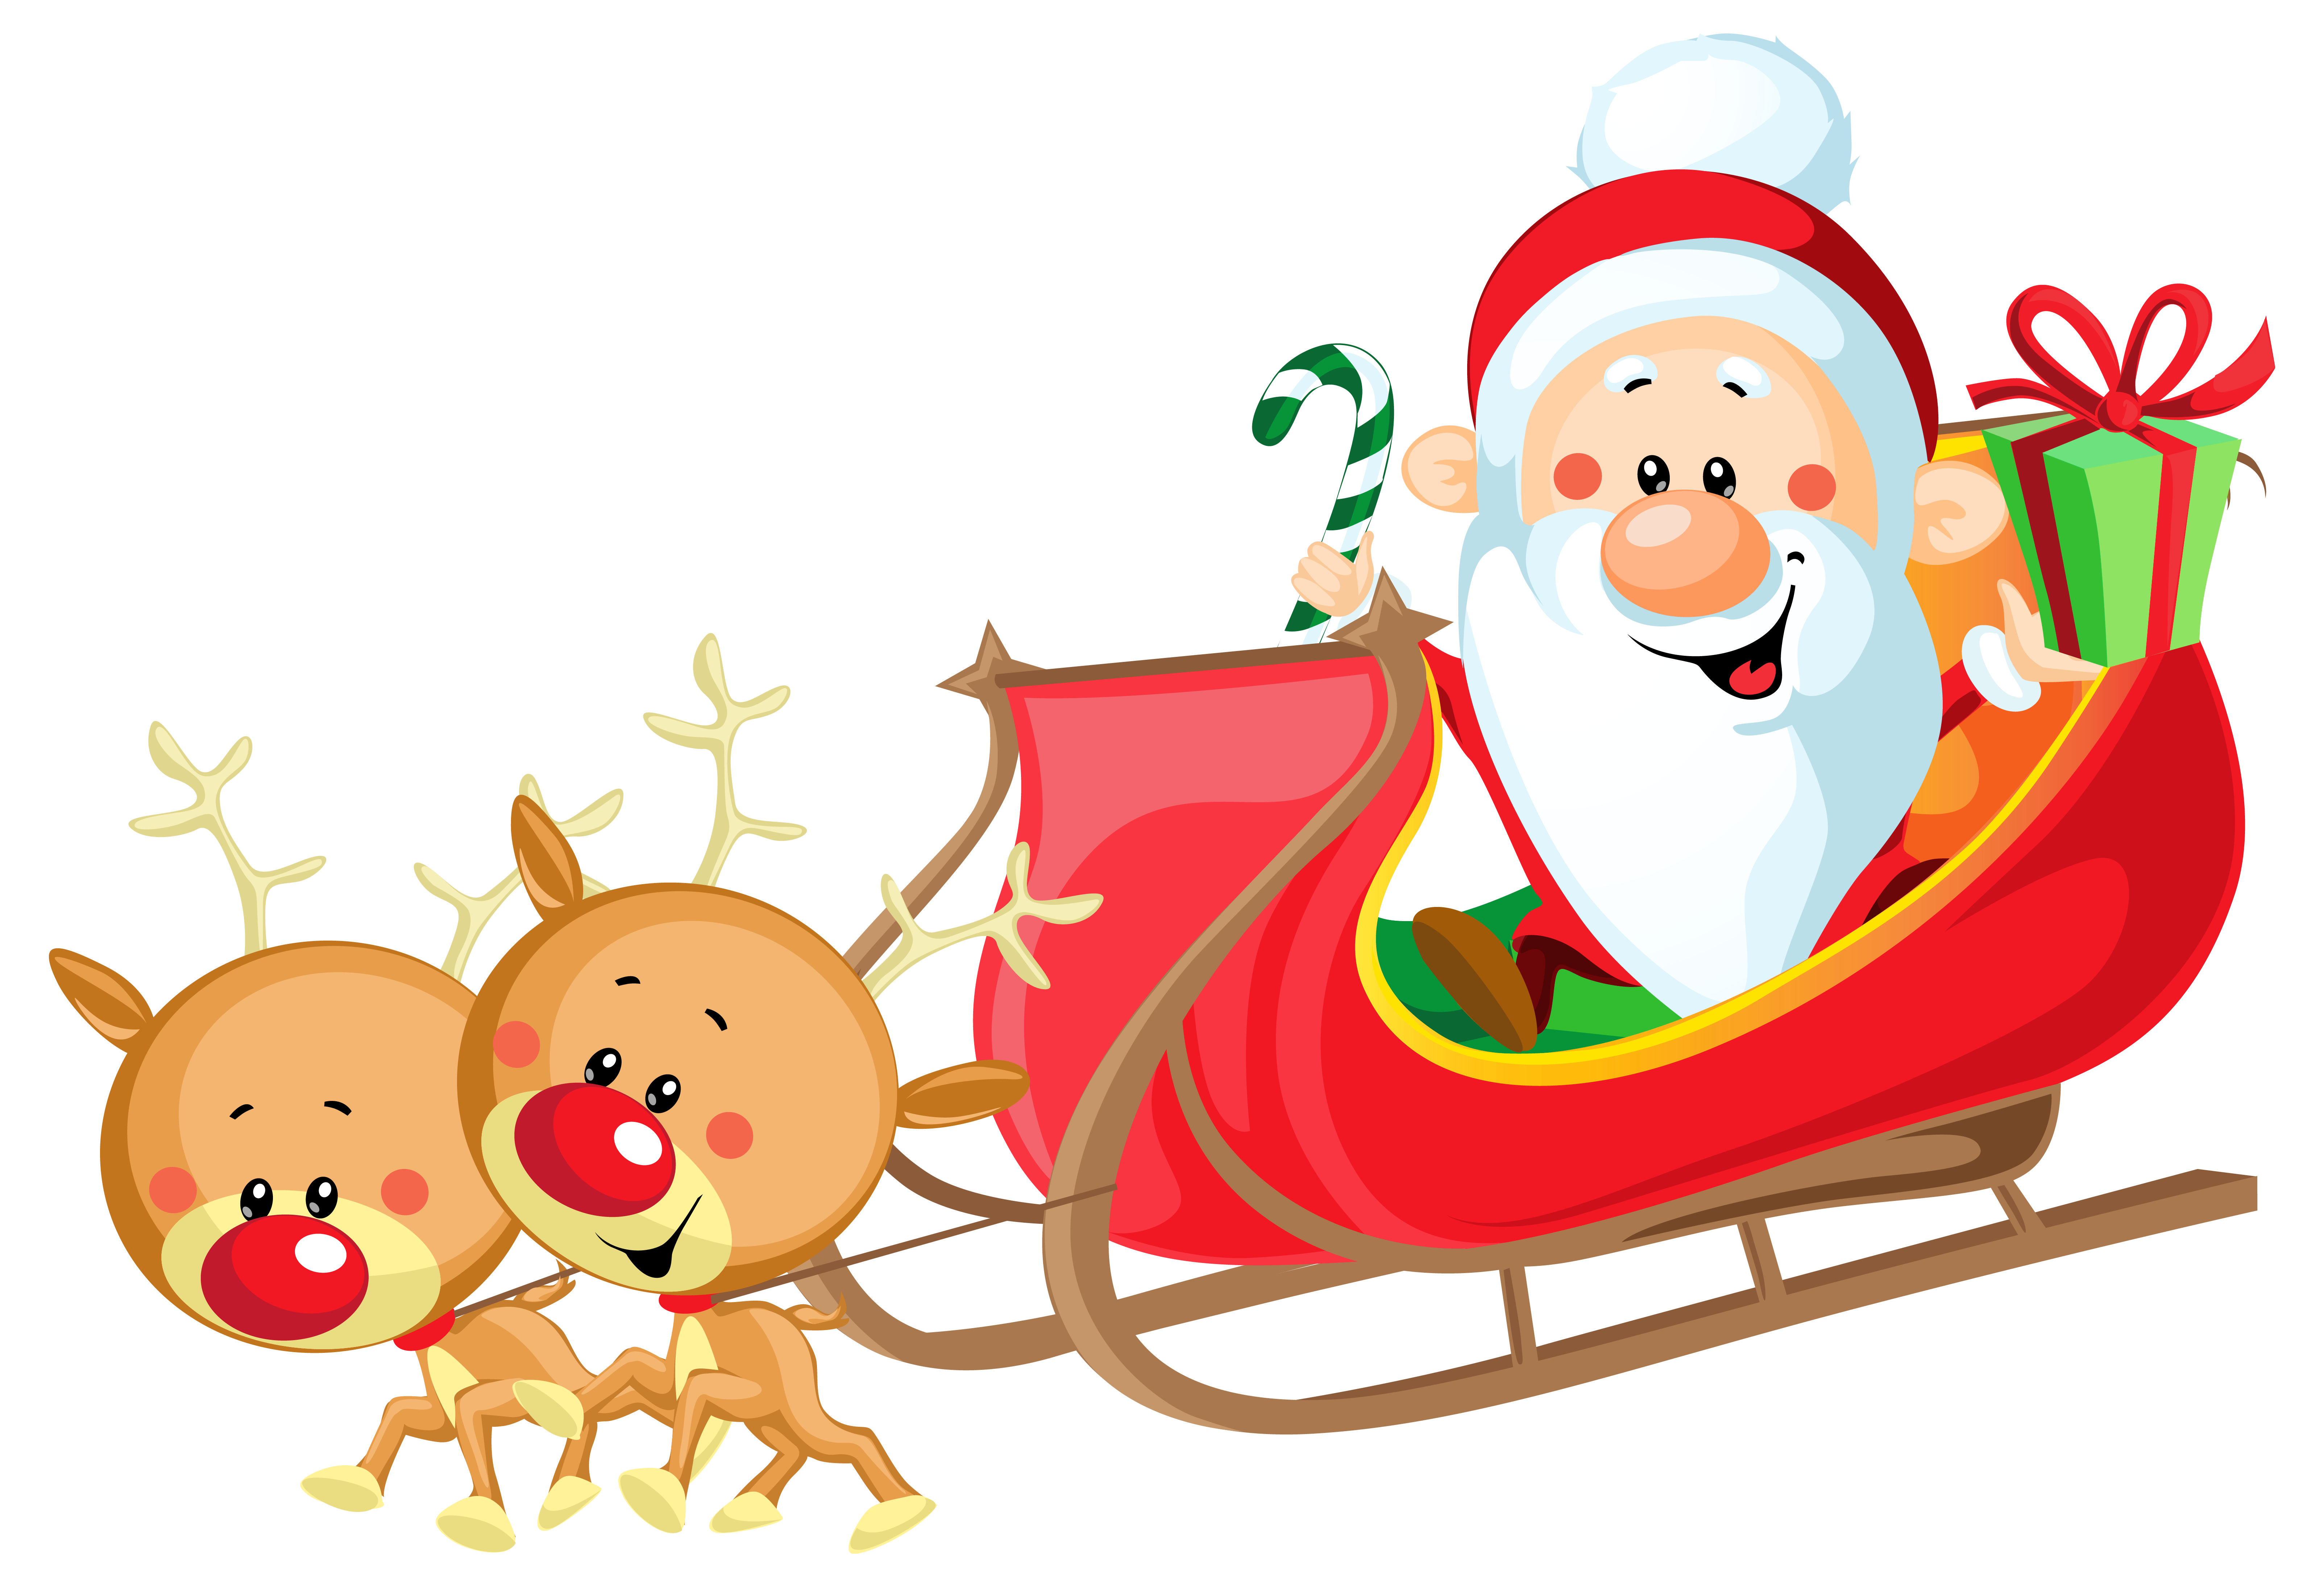 Christmas sleighs clipart jpg library download 28+ Collection of Santa On Sleigh Clipart | High quality, free ... jpg library download